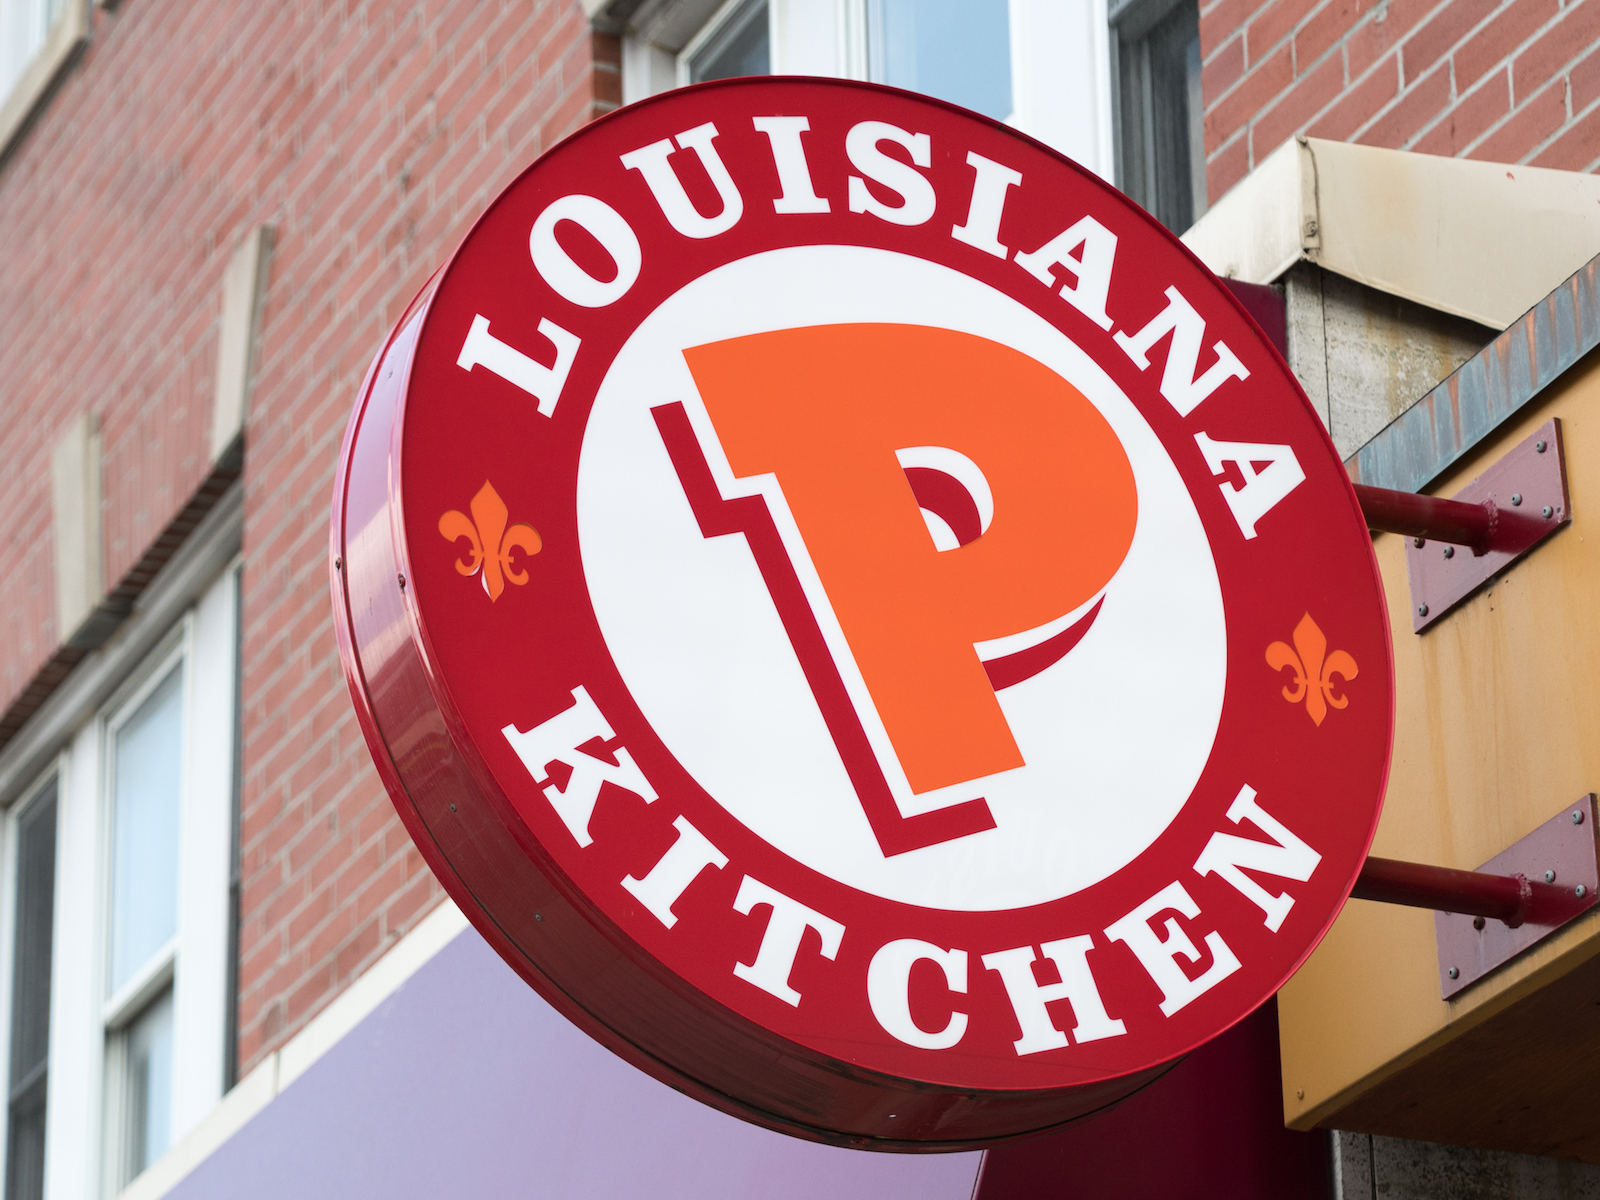 Restaurant facing backlash for serving Popeyes' chicken